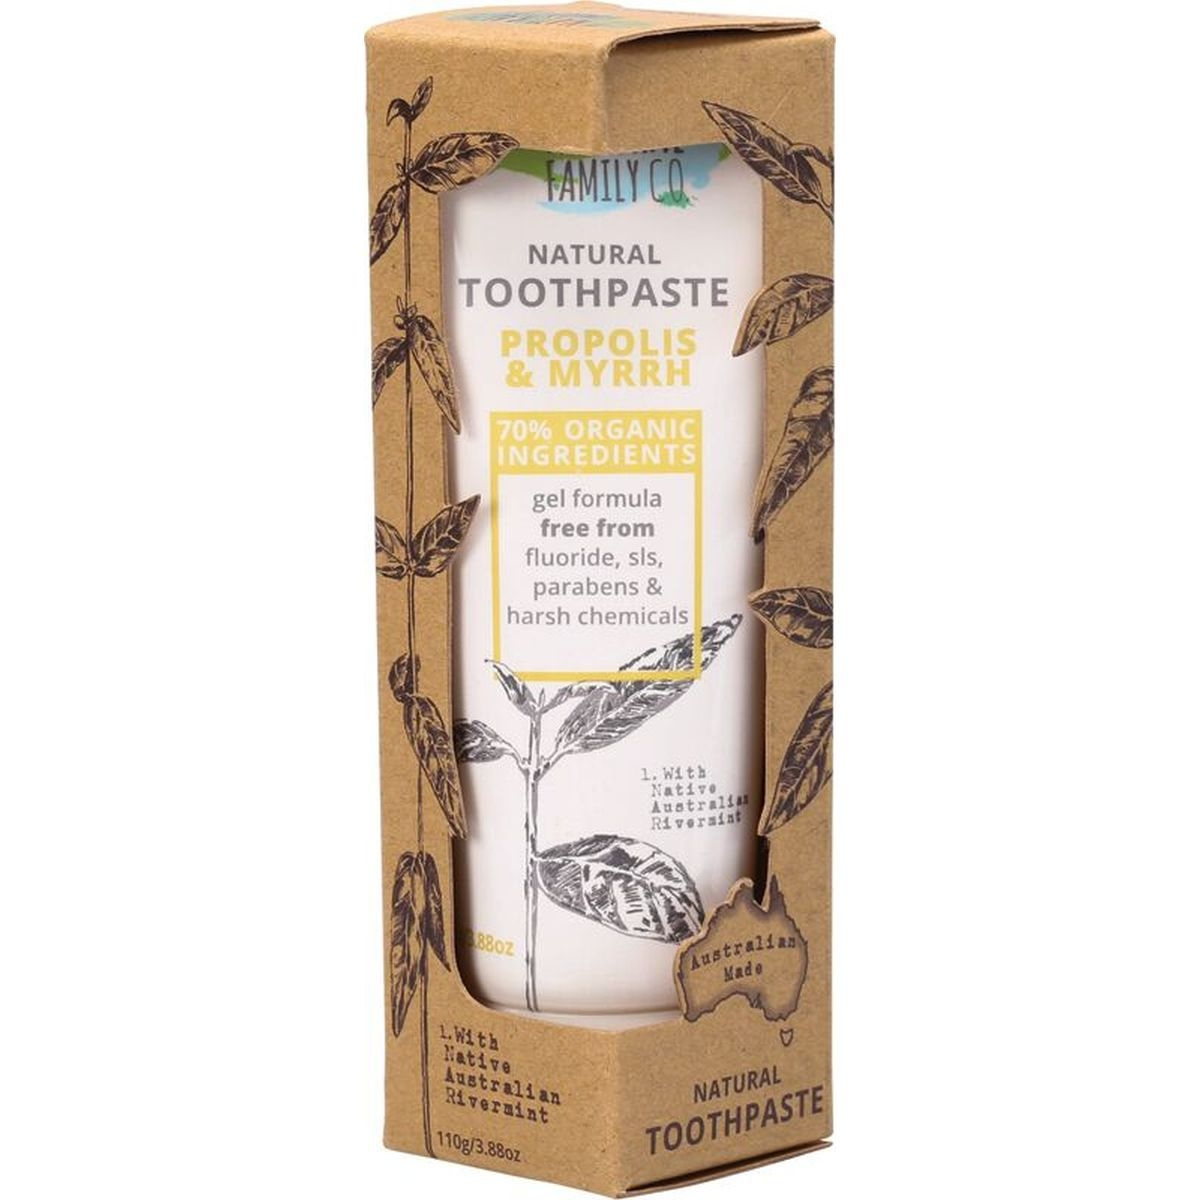 The Natural Family Co Propolis and Myrrh Toothpaste